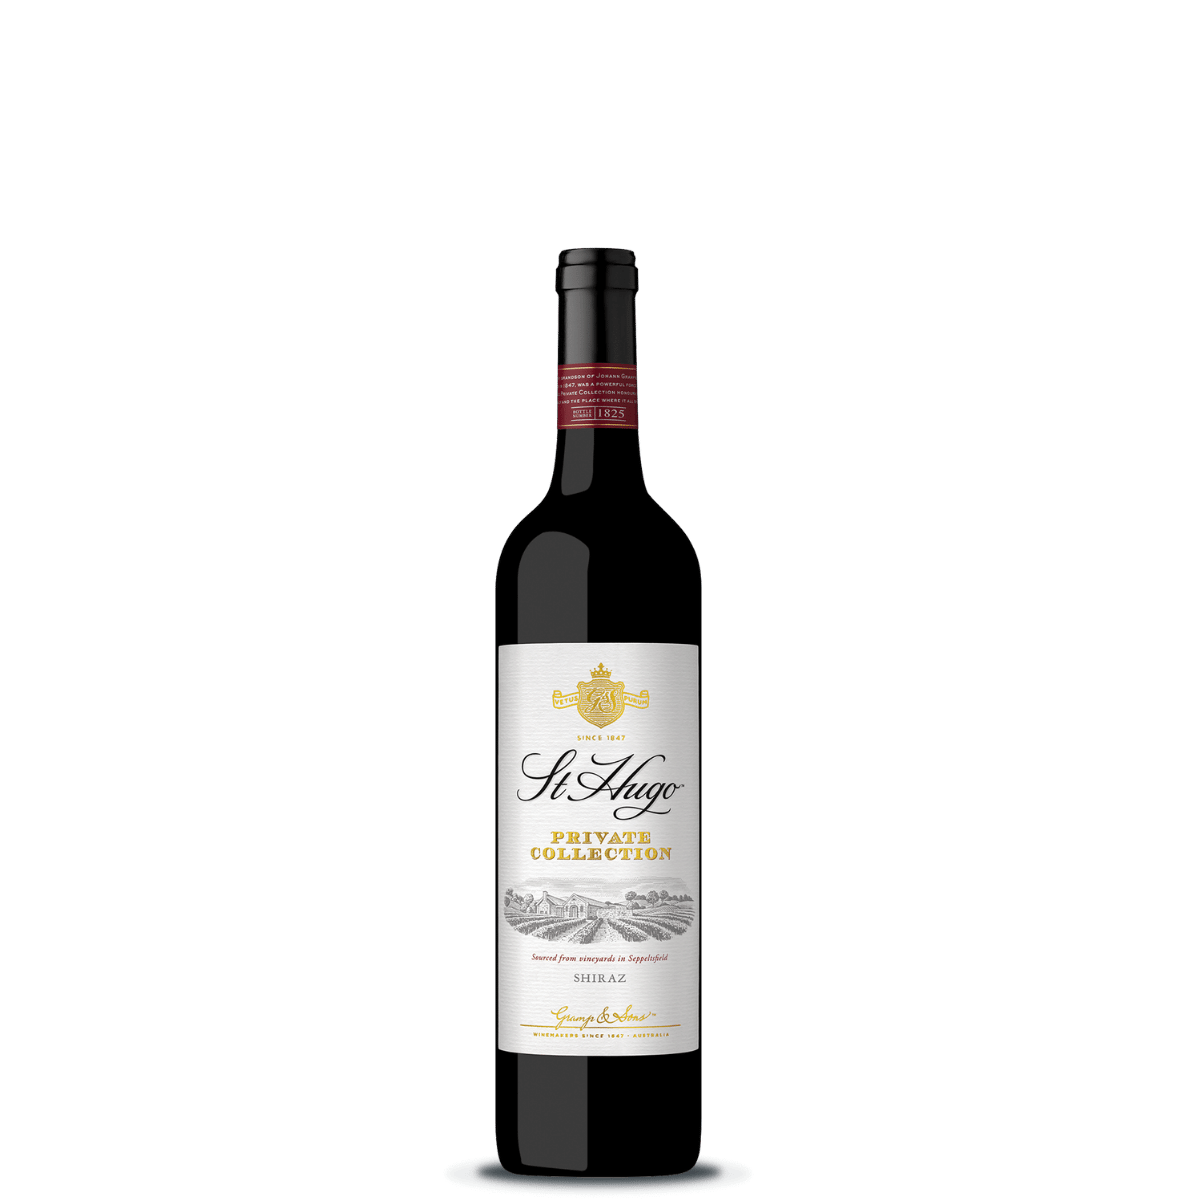 ST_HUGO_-_PRIVATE_COLLECTION_-_SEPPELTSFIELD_SUB-REGION_SHIRAZ_2012_750ML